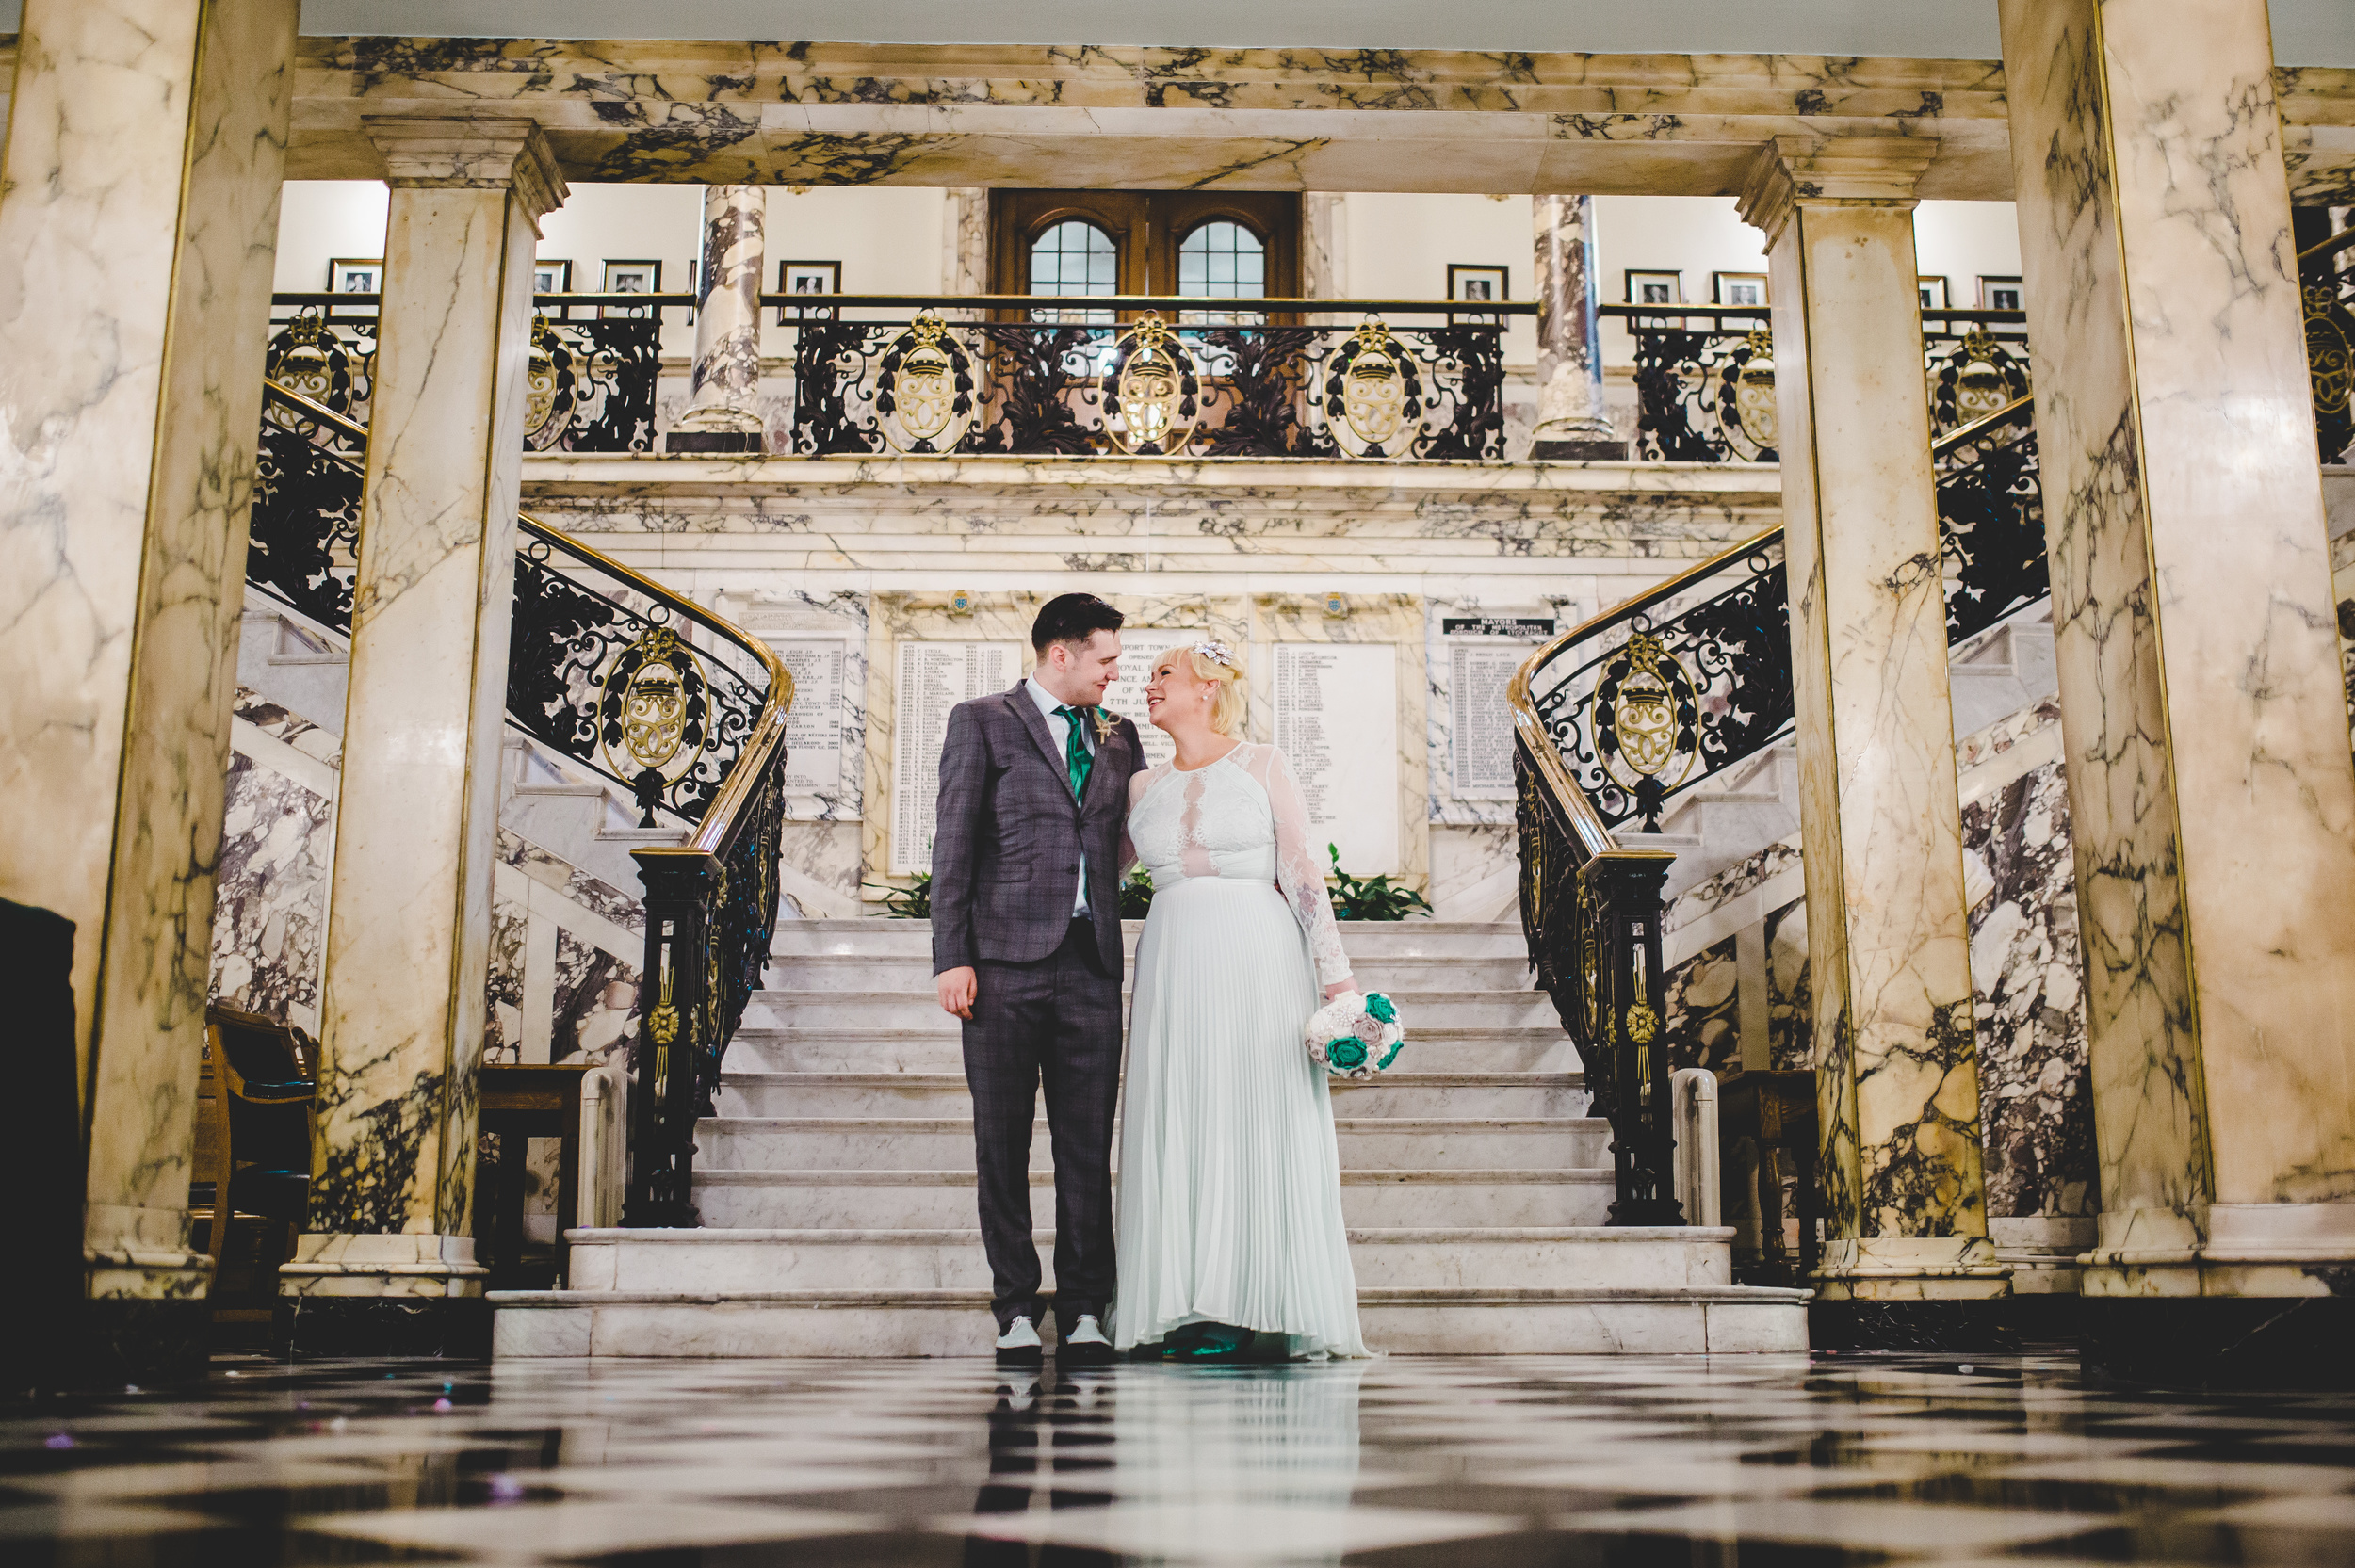 beautiful interiors - Stockport Town Hall wedding